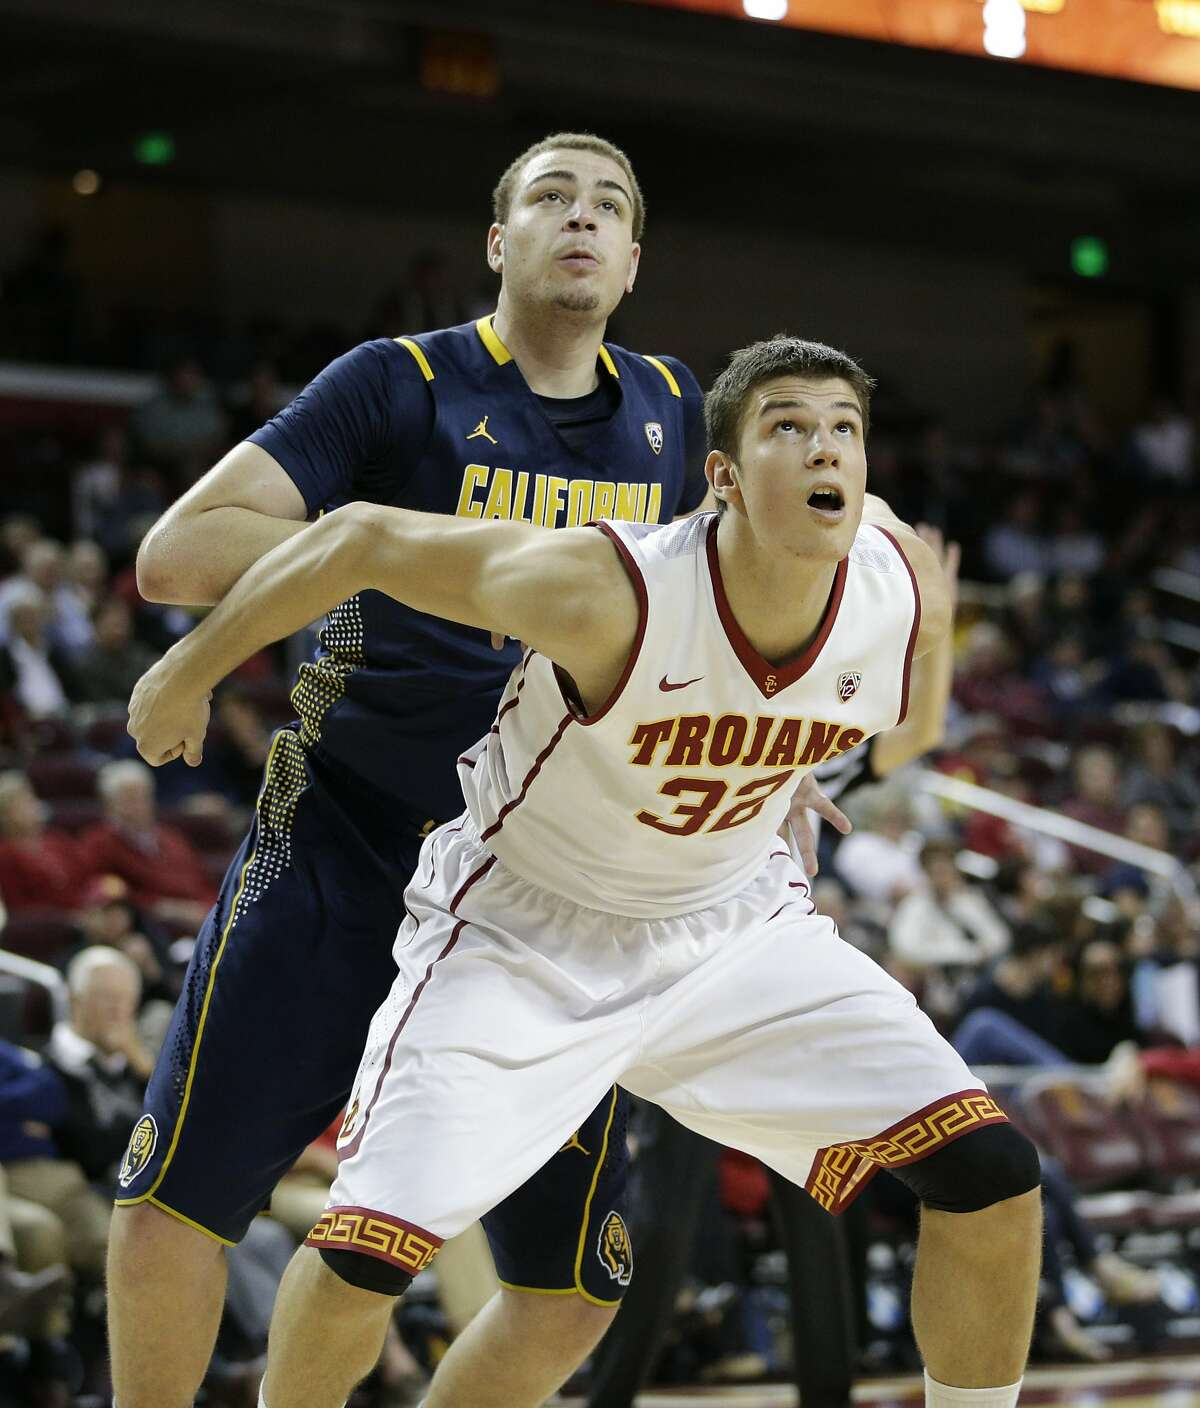 Southern California 's Nikola Jovanovic, front, of Serbia, fights for position with California's Kameron Rooks during the first half of an NCAA college basketball game on Wednesday, Jan. 22, 2014, in Los Angeles. (AP Photo/Jae C. Hong)